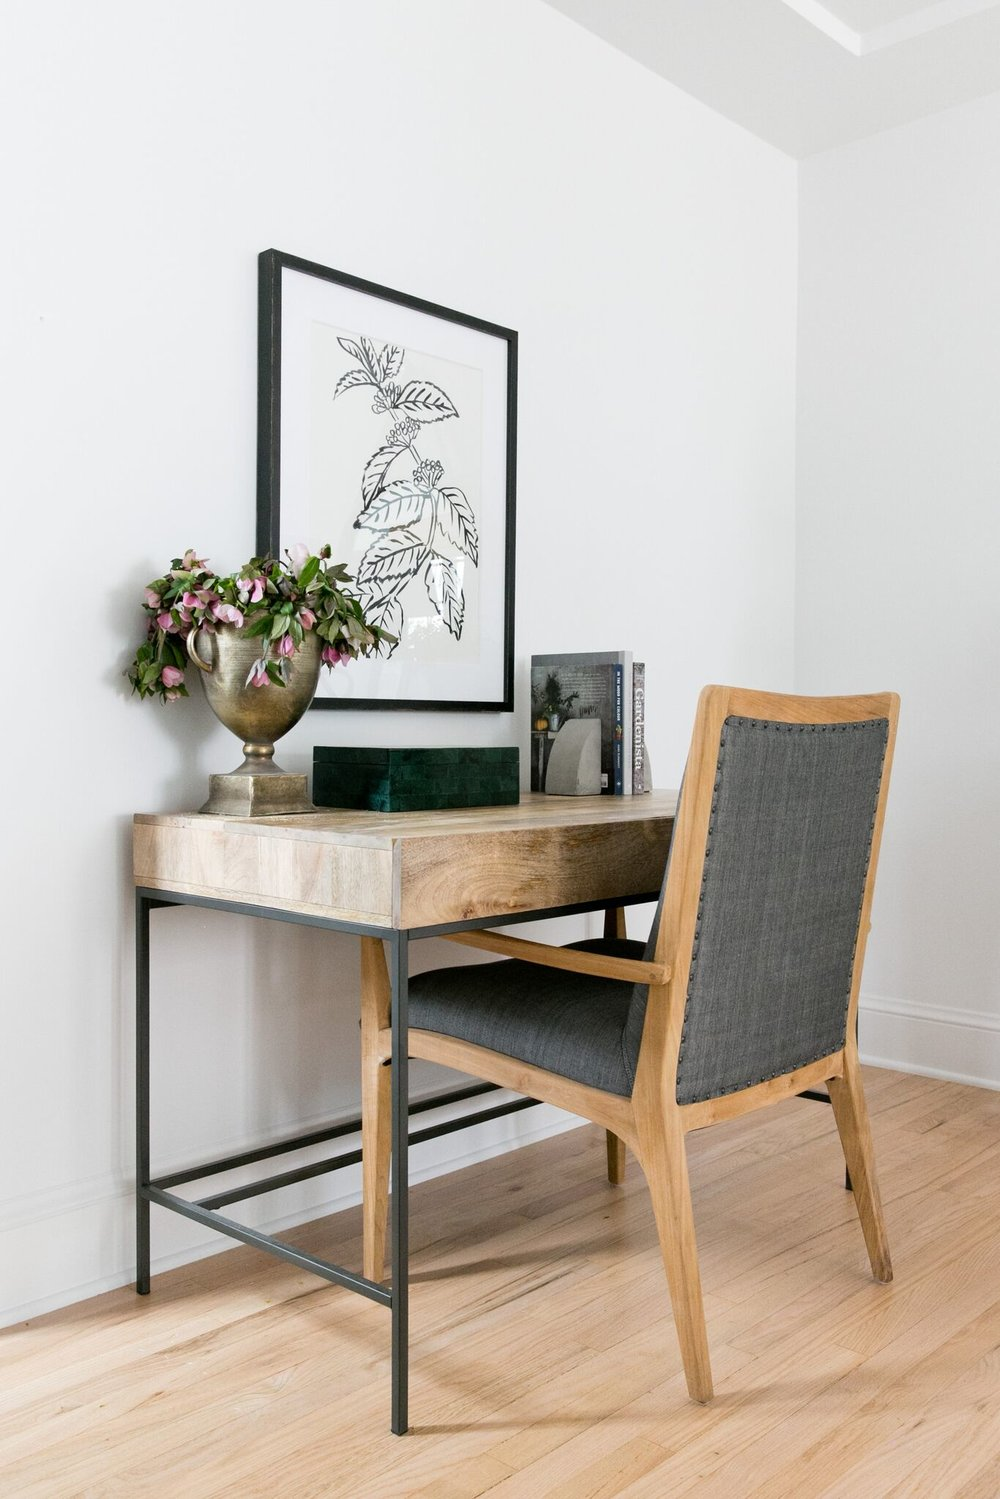 Metal and wood desk with beautiful wall artwork.